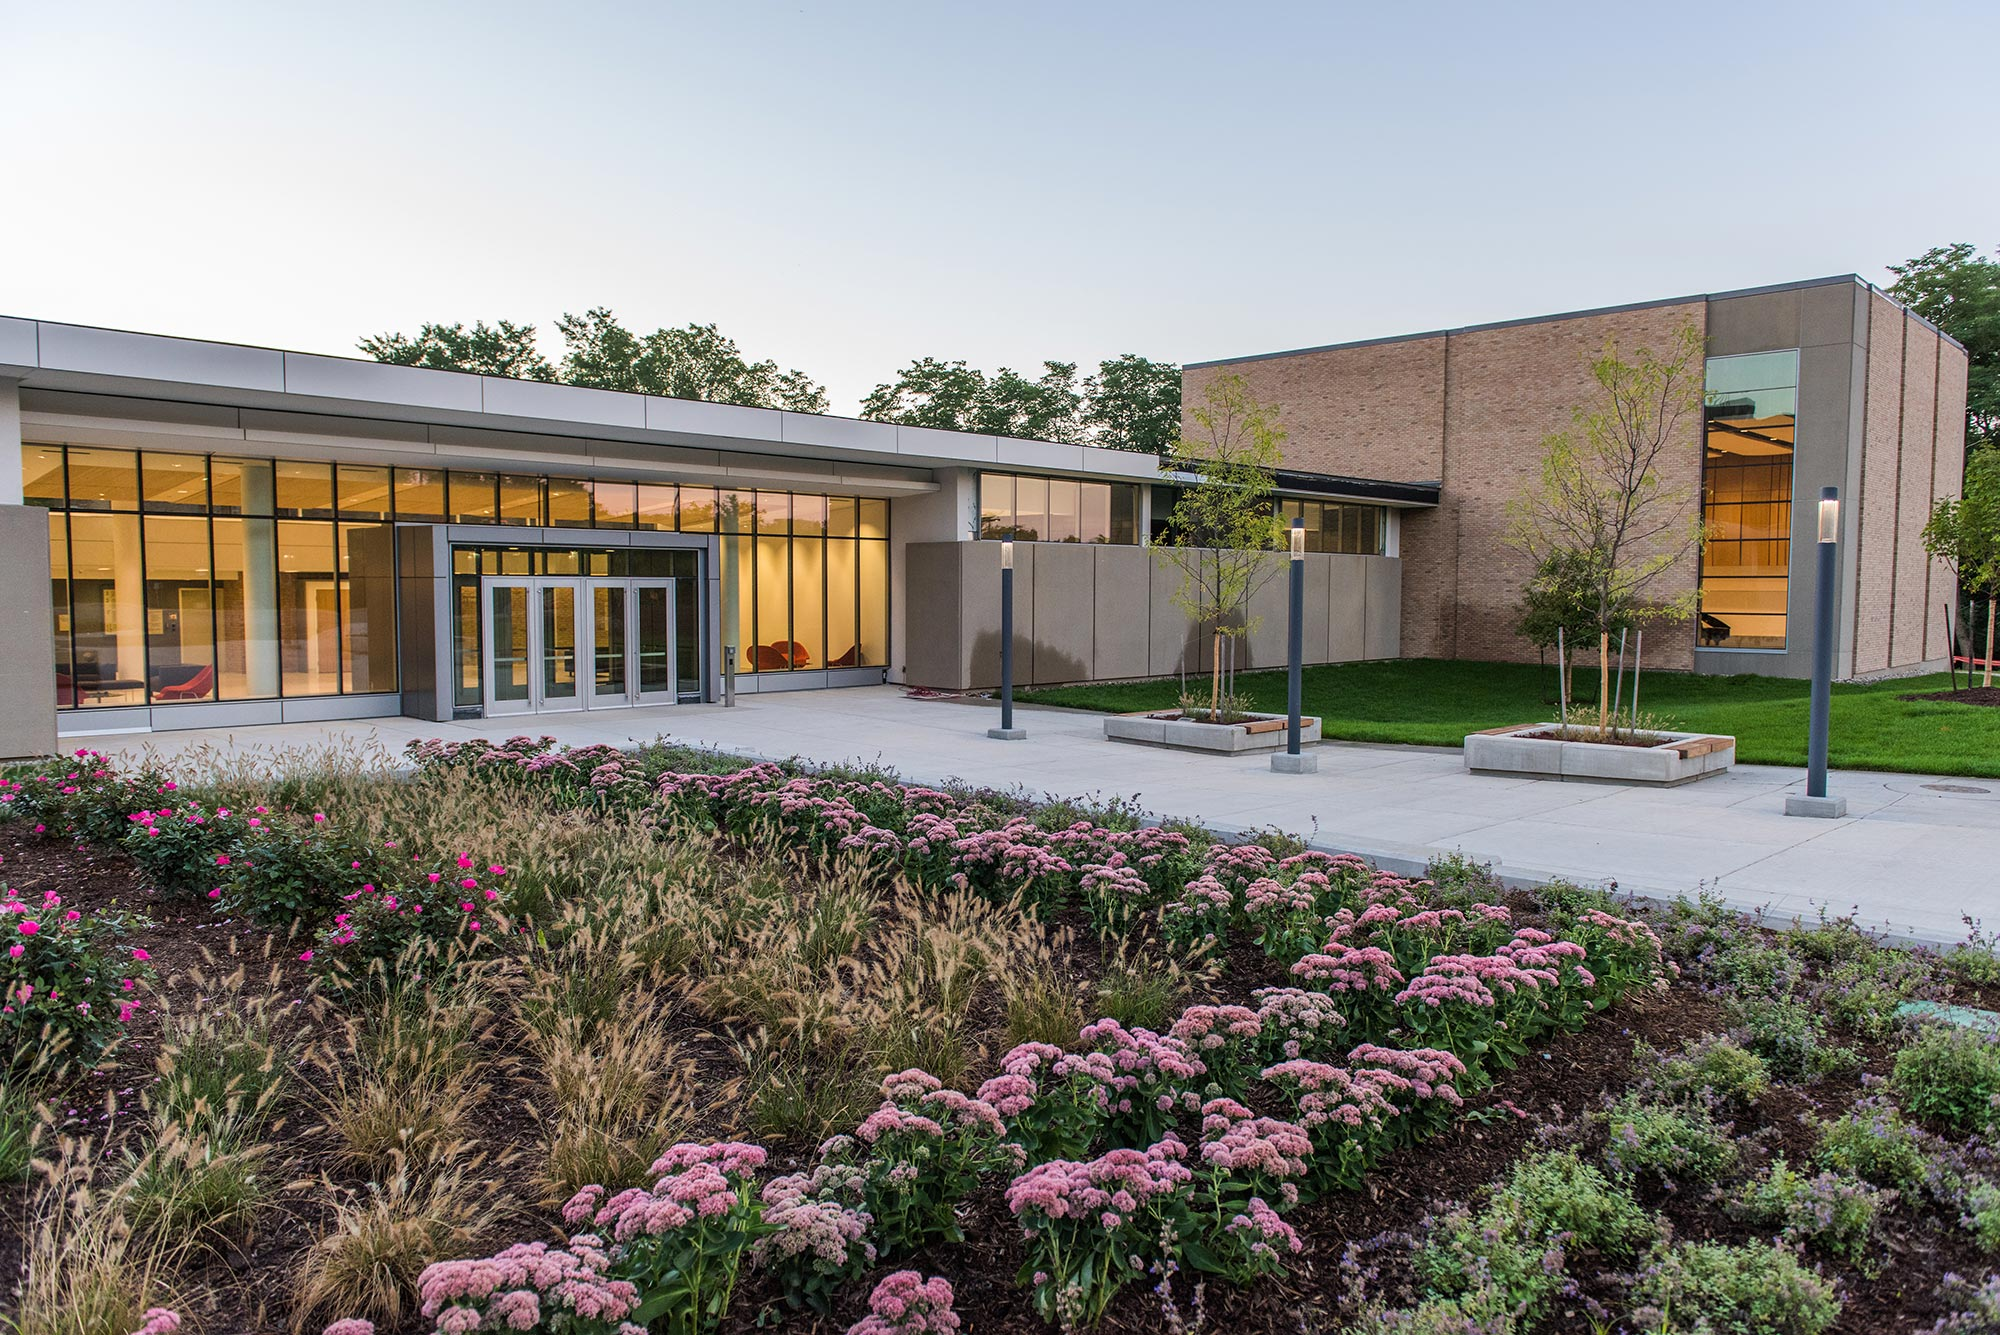 Brehm Pavilion, new main entrance to Moore Building. Images: Eric Bronson, Michigan Photography